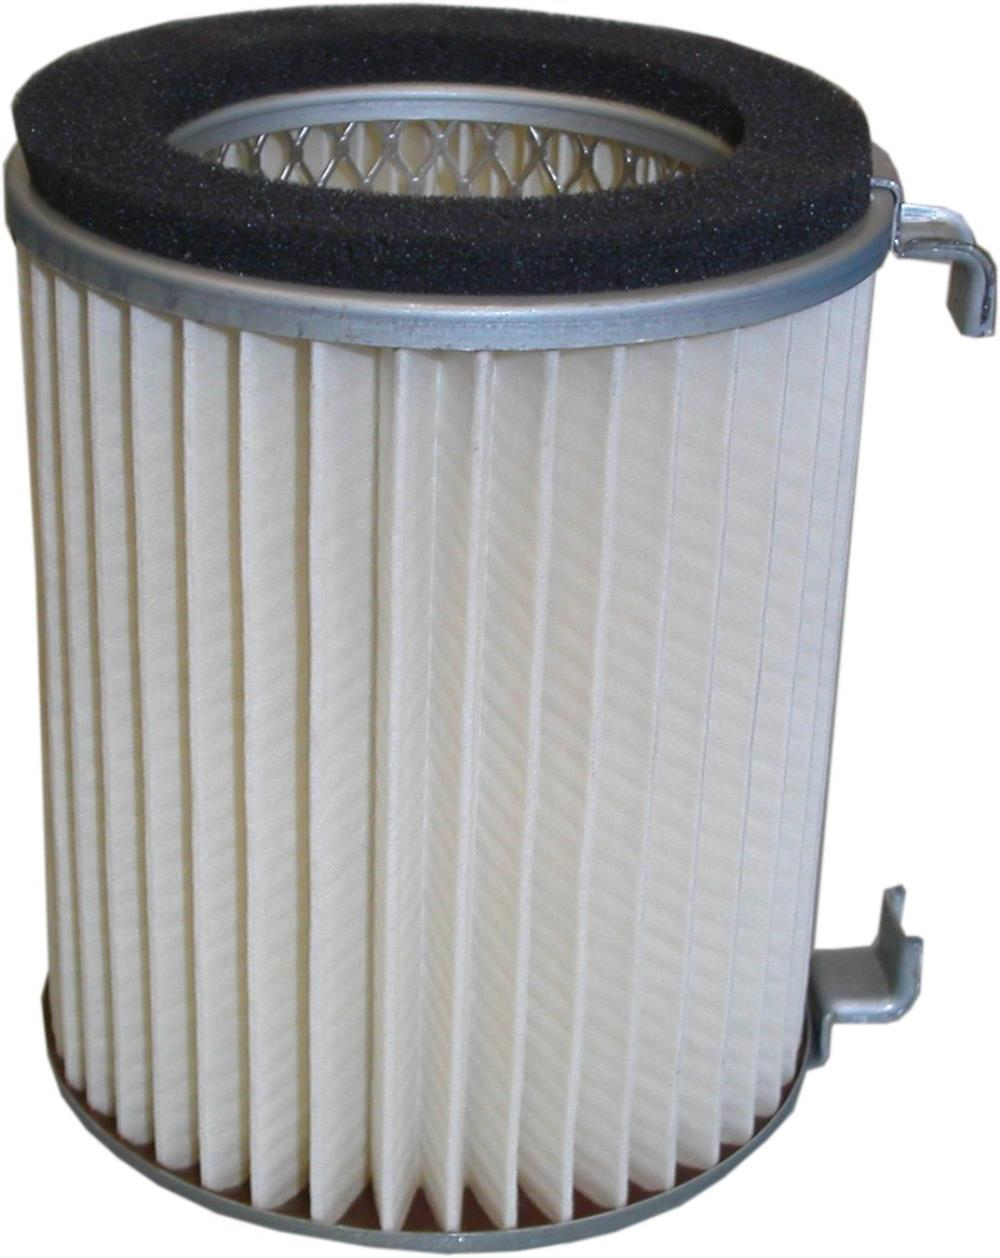 GR72A New GSX750ES//EF Engine Air Filter for 1984 Suzuki GSX 750 S-E /'Katana/'